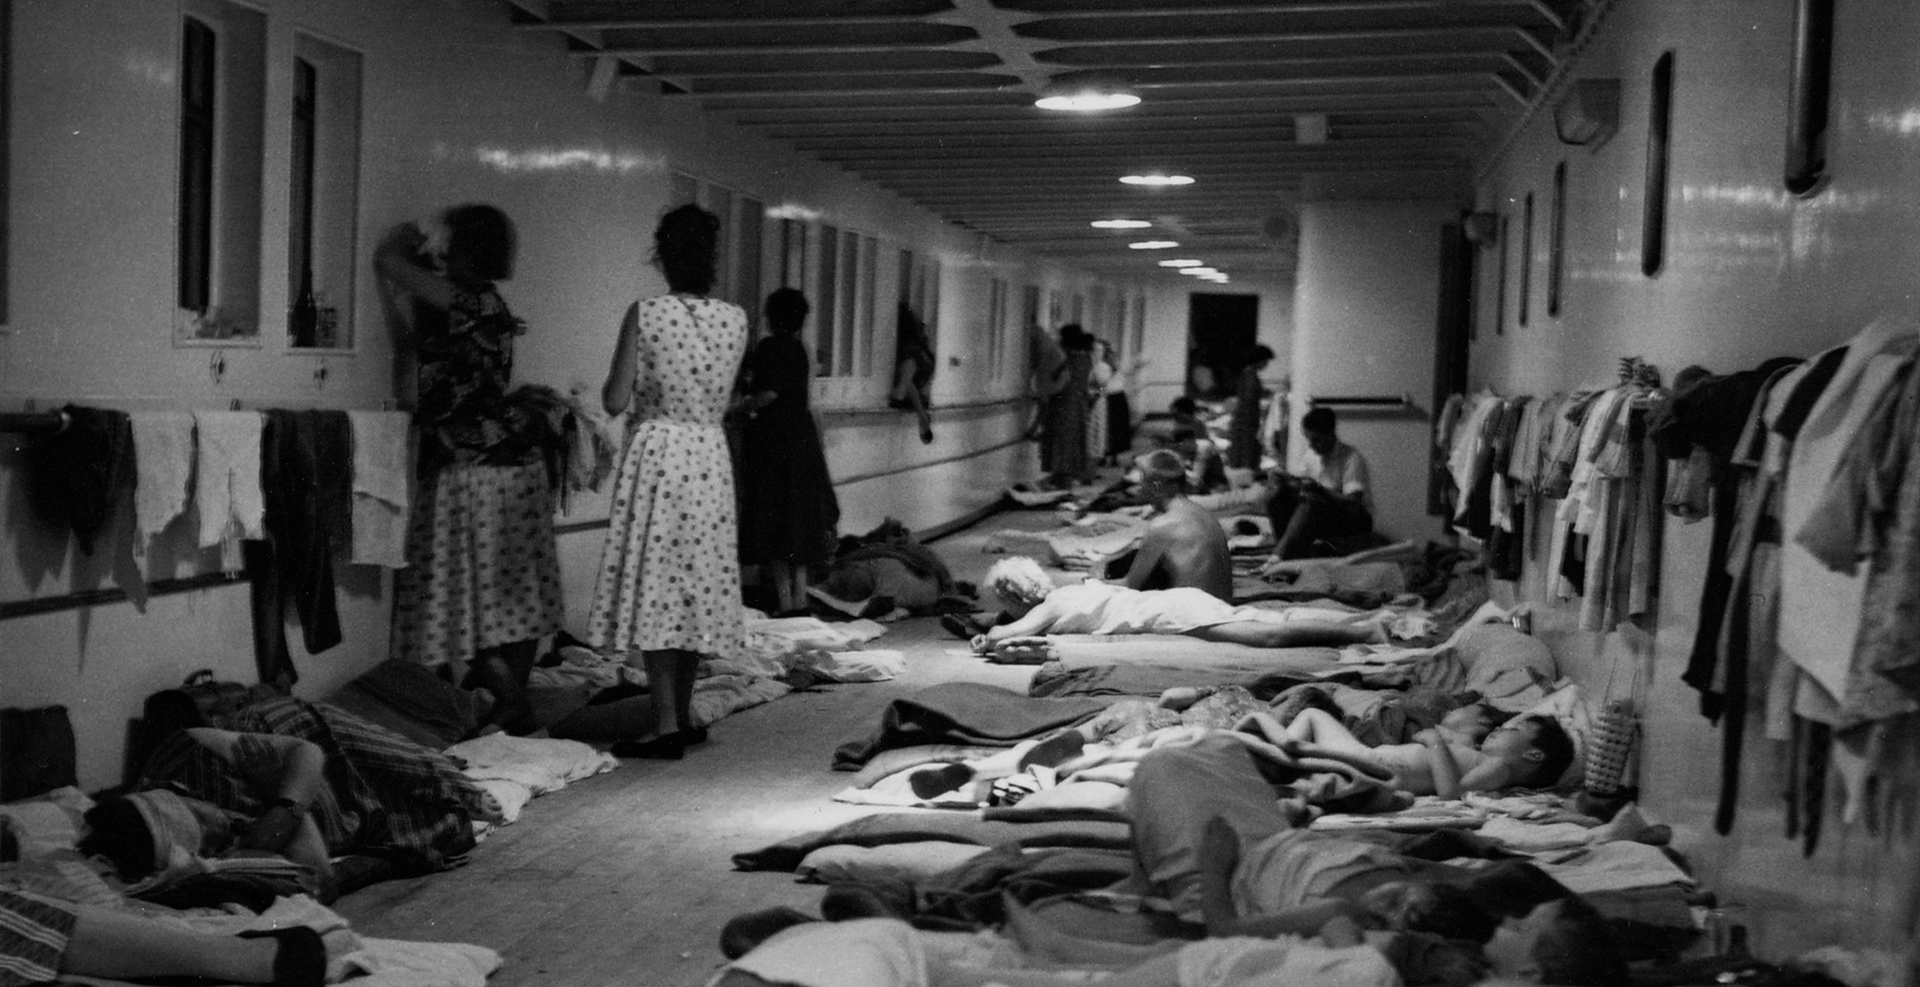 Temporary accommodation for Skaubryn survivors on the deck of Roma, 1958. ANMM Collection Gift from Barbara Alysen ANMS0214[063]. Reproduced courtesy International Organisation for Migration